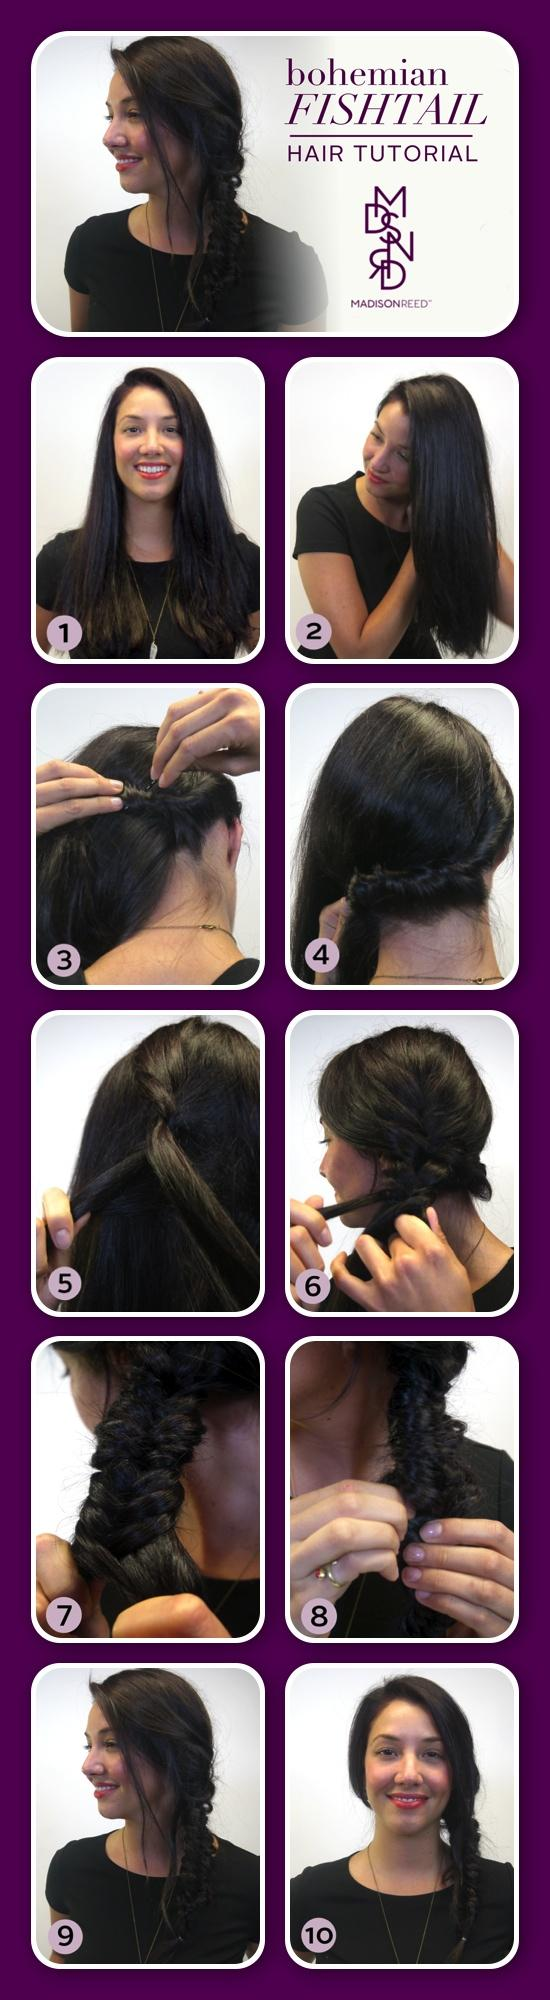 Bohemian Fishtail Tutorial Layout